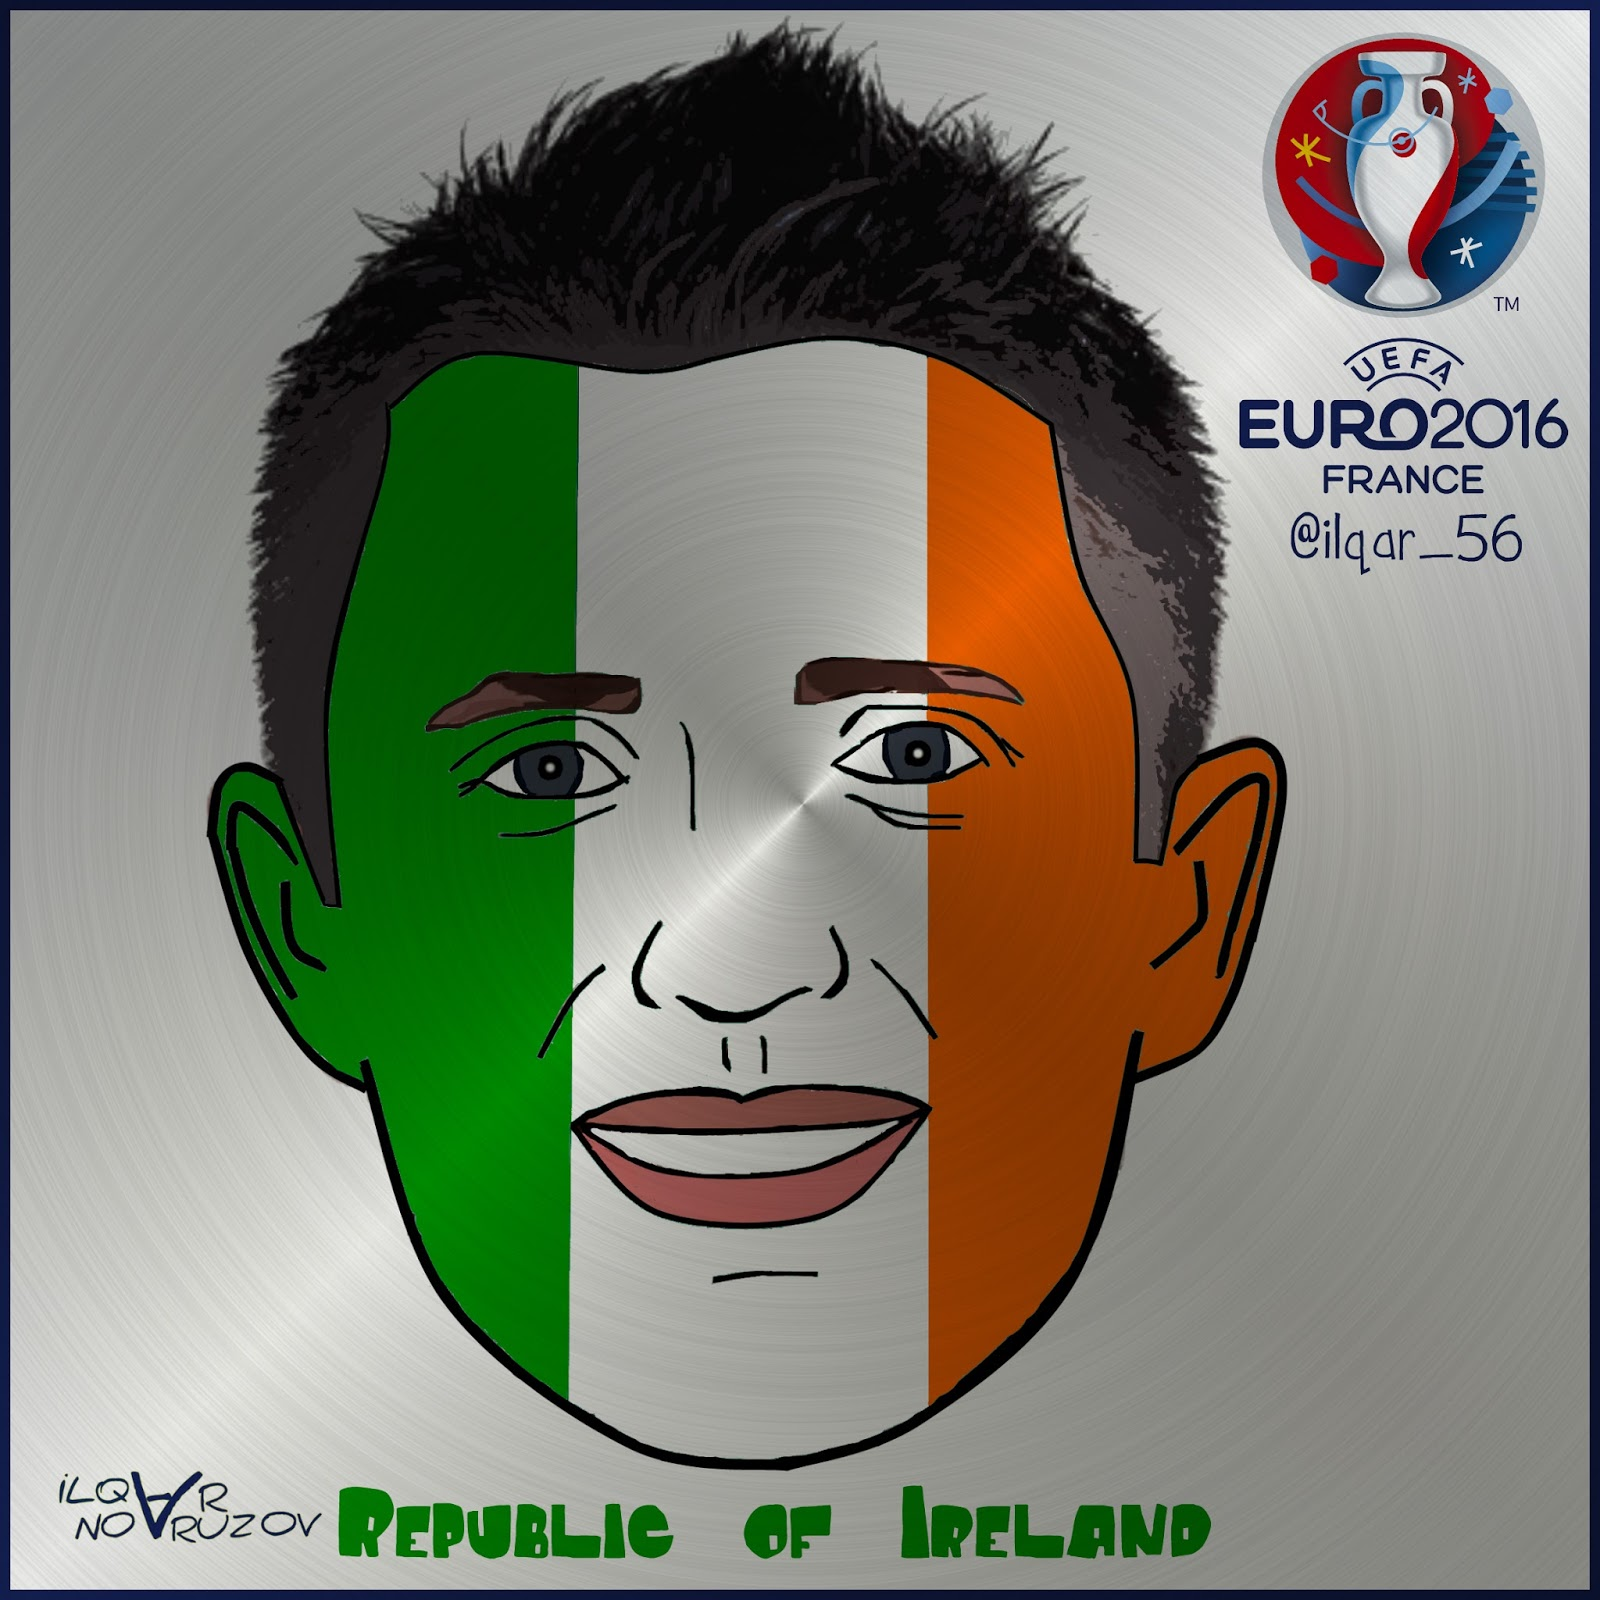 Republic Of Ireland V Azerbaijan: Ilqar Novruzov Cartoon: EURO 2016 Republic Of Ireland